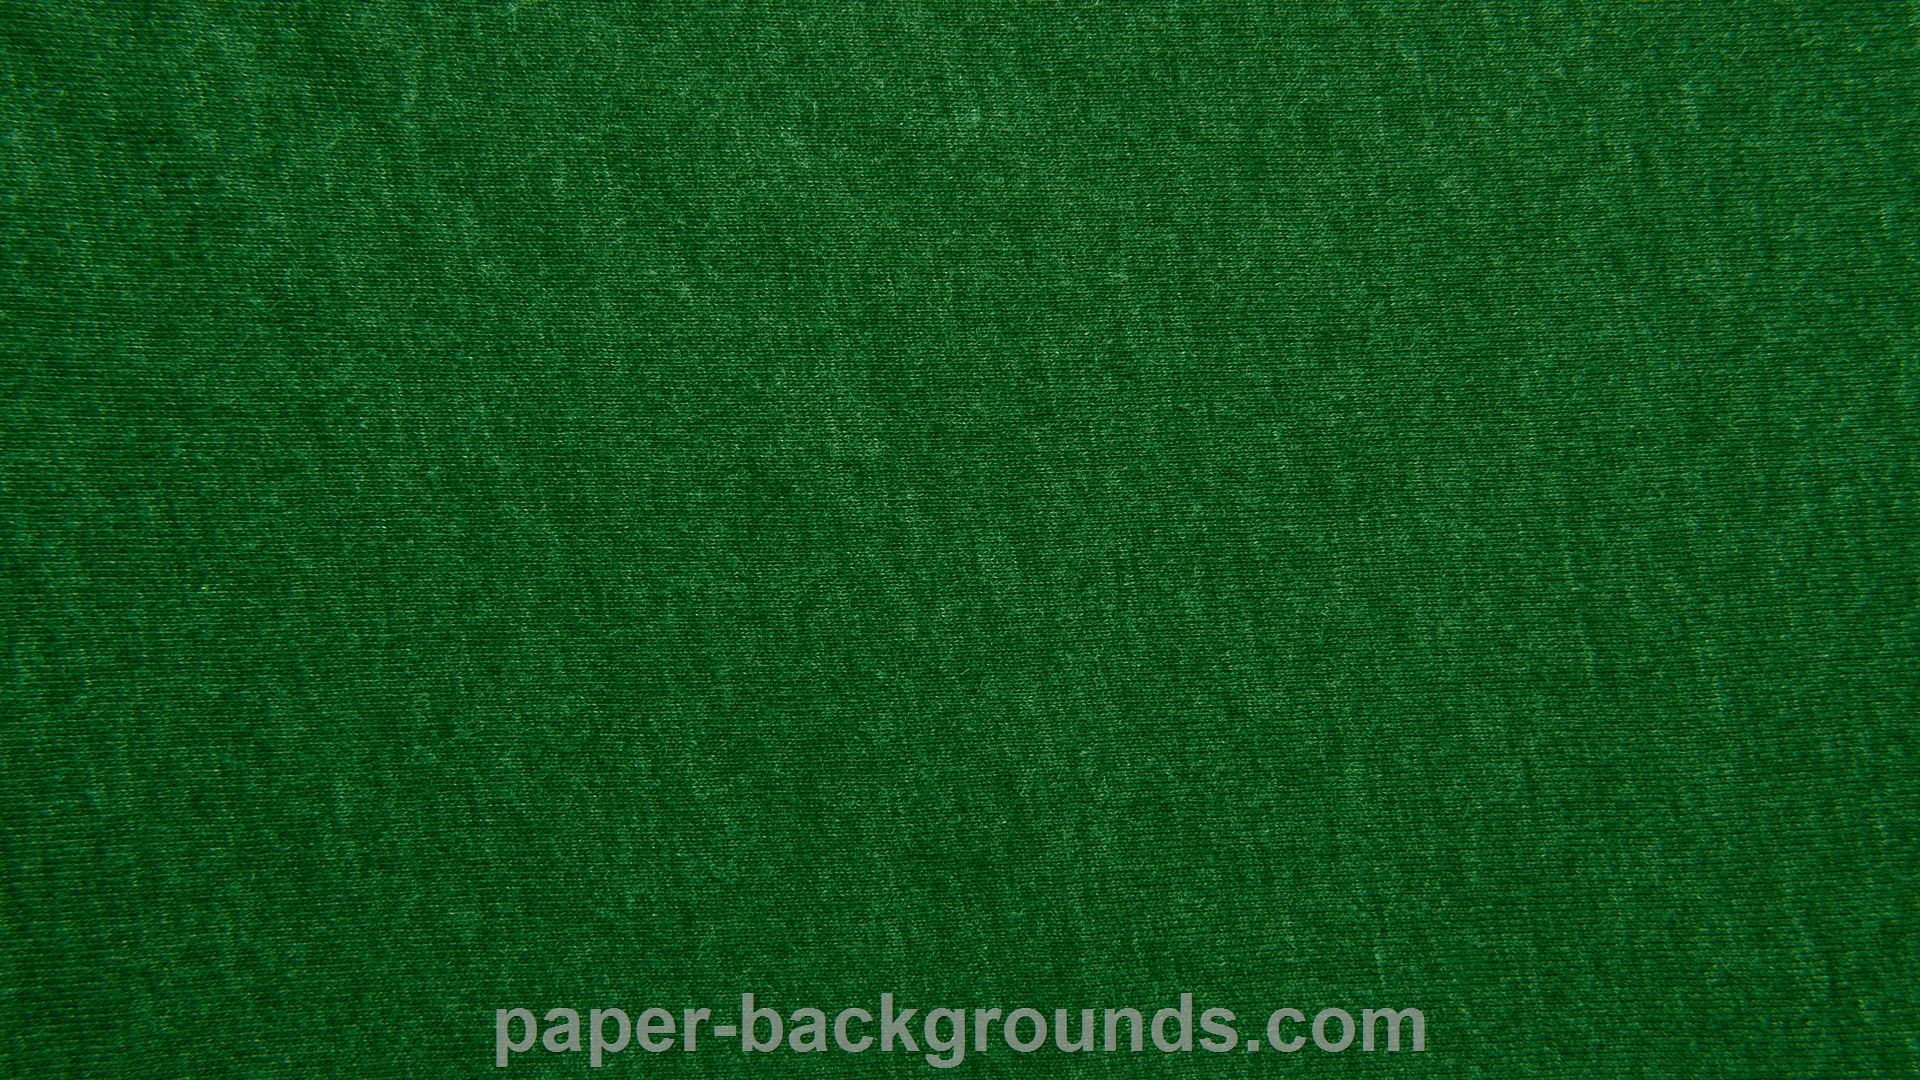 Paper backgrounds pastel royalty free hd paper backgrounds green fabric texture background thecheapjerseys Gallery